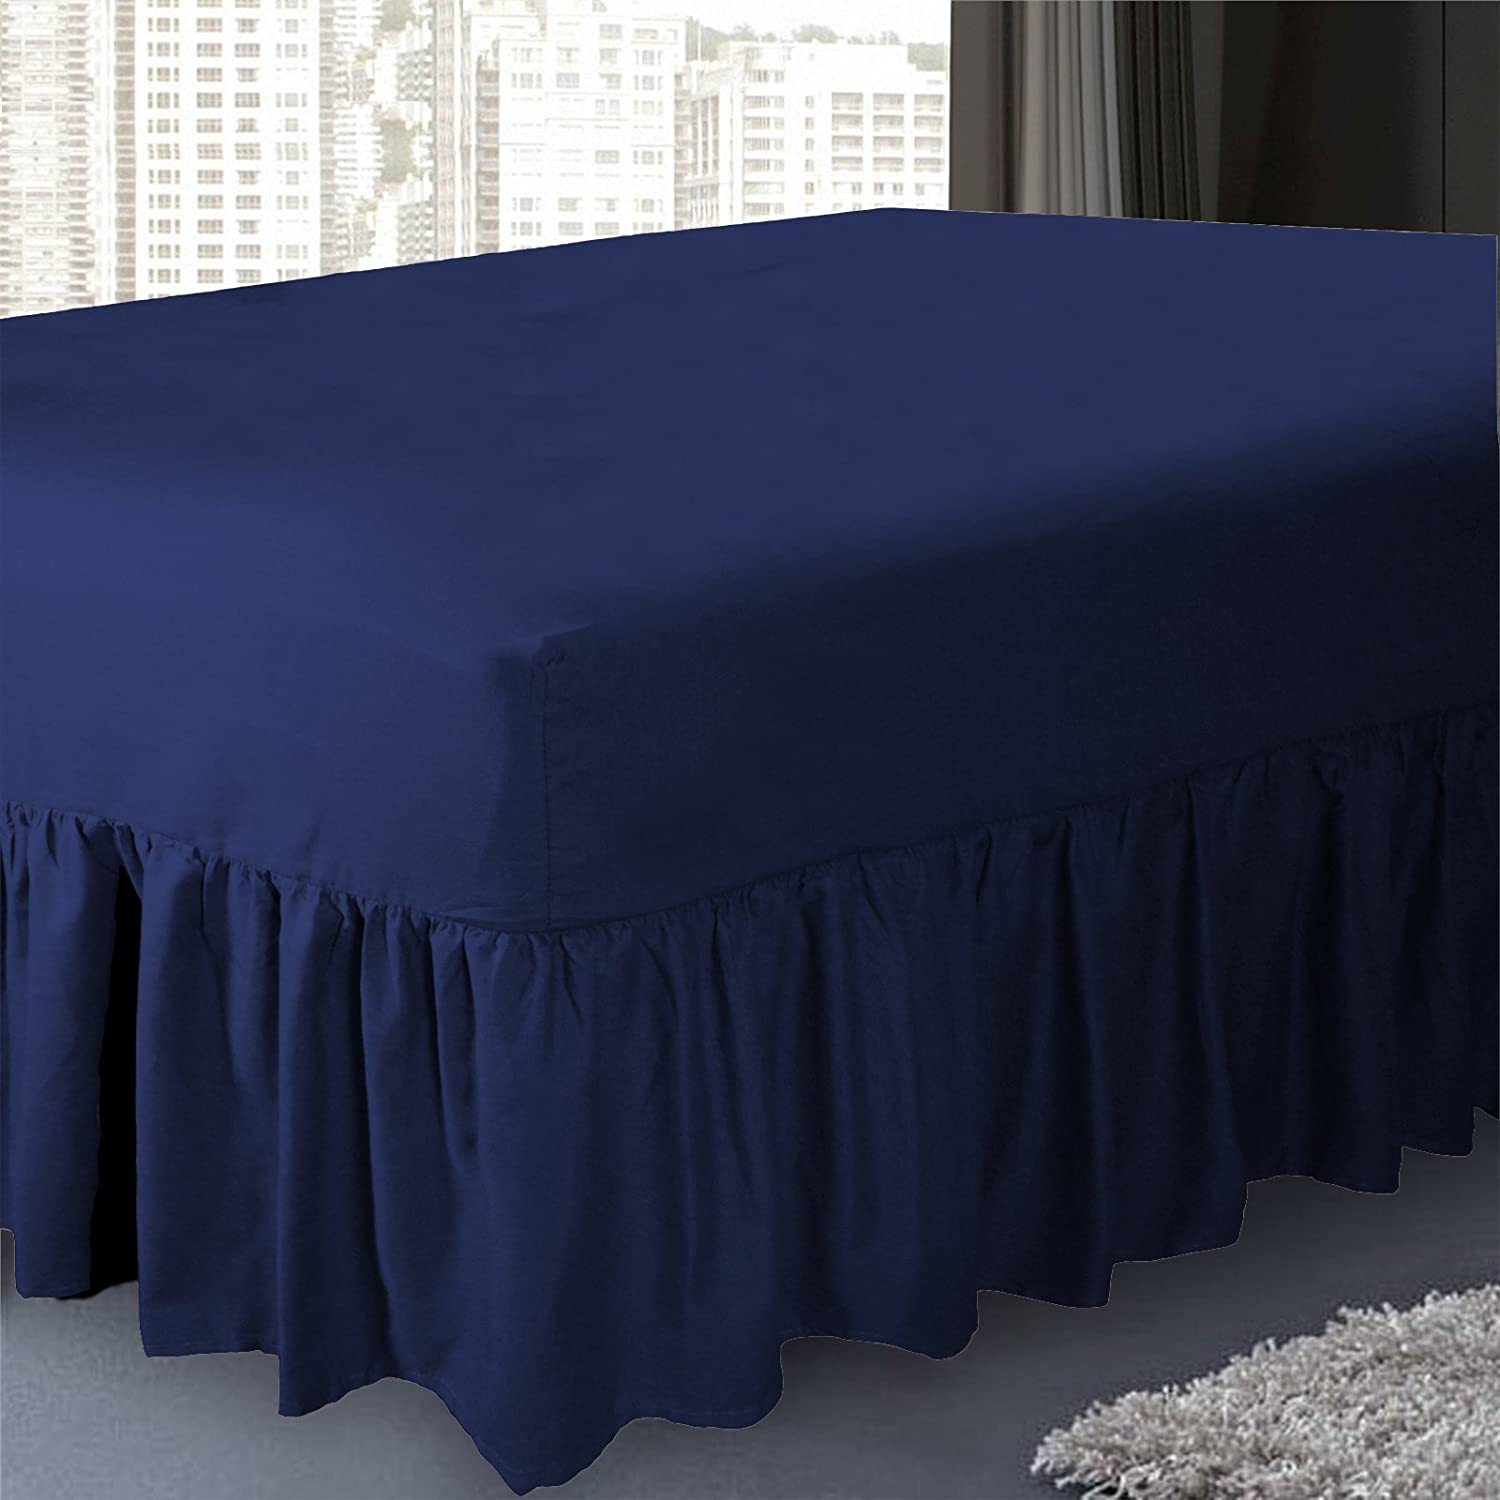 4ft// Navy Blue PolyCotton Blend 50:50 Valance Sheet By Sleep/&Smile // three quarter Size Navy Blue small double